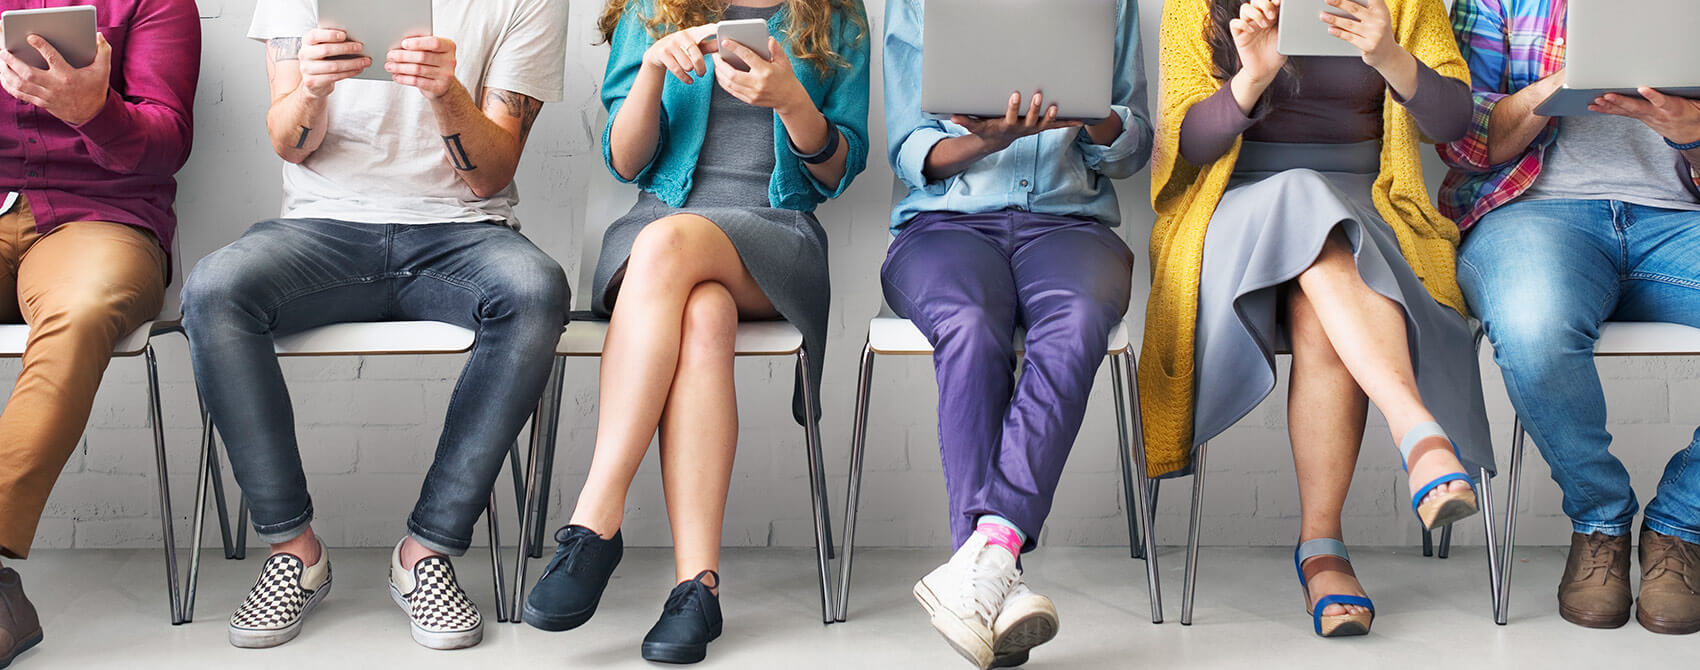 A group of people in modern outfits sitting next to one another use various electronic devices to access social and digital media.